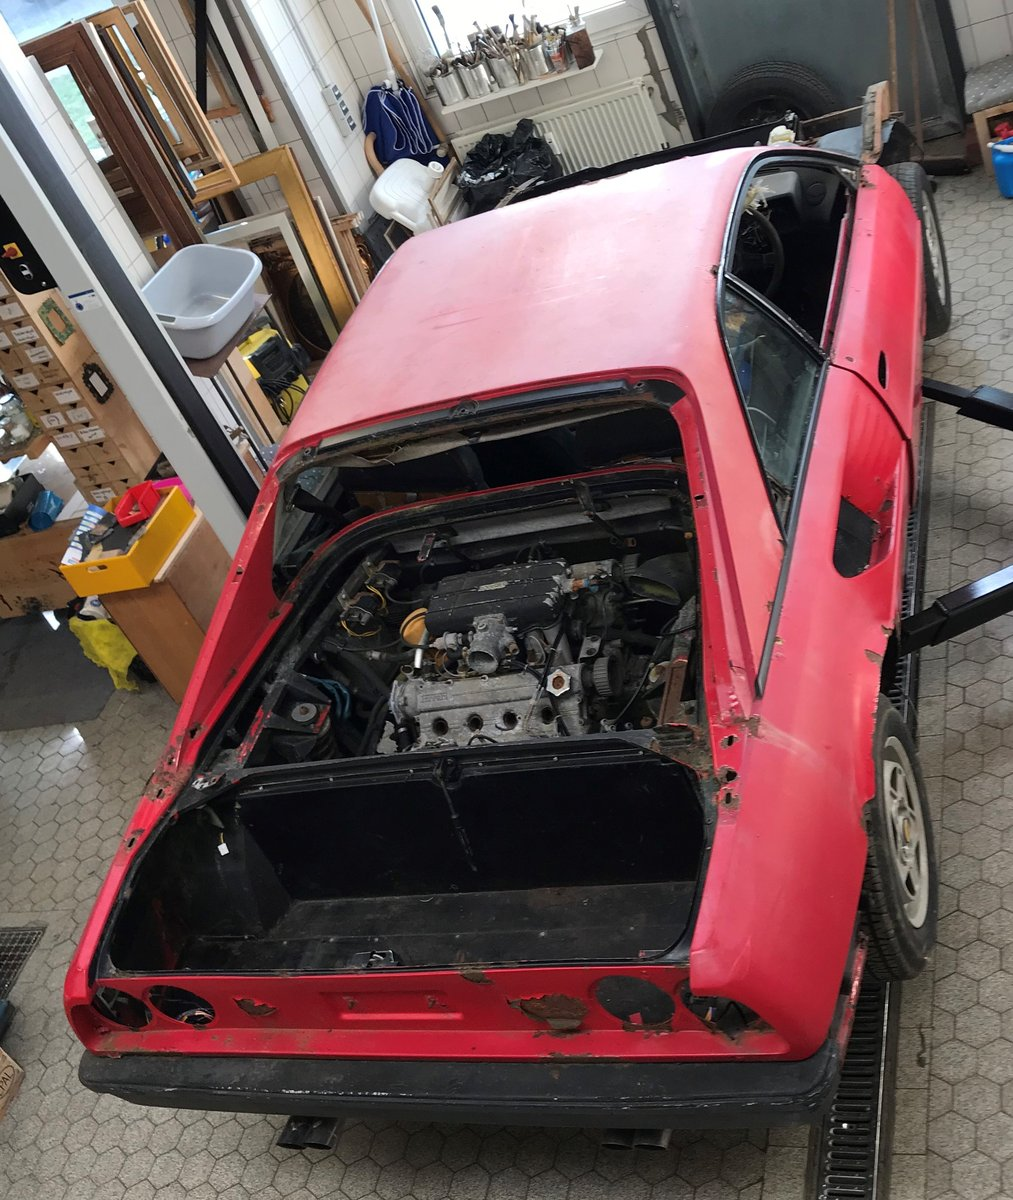 1981 Mondial 8 Parts Car including 308 injection engine For Sale (picture 1 of 6)